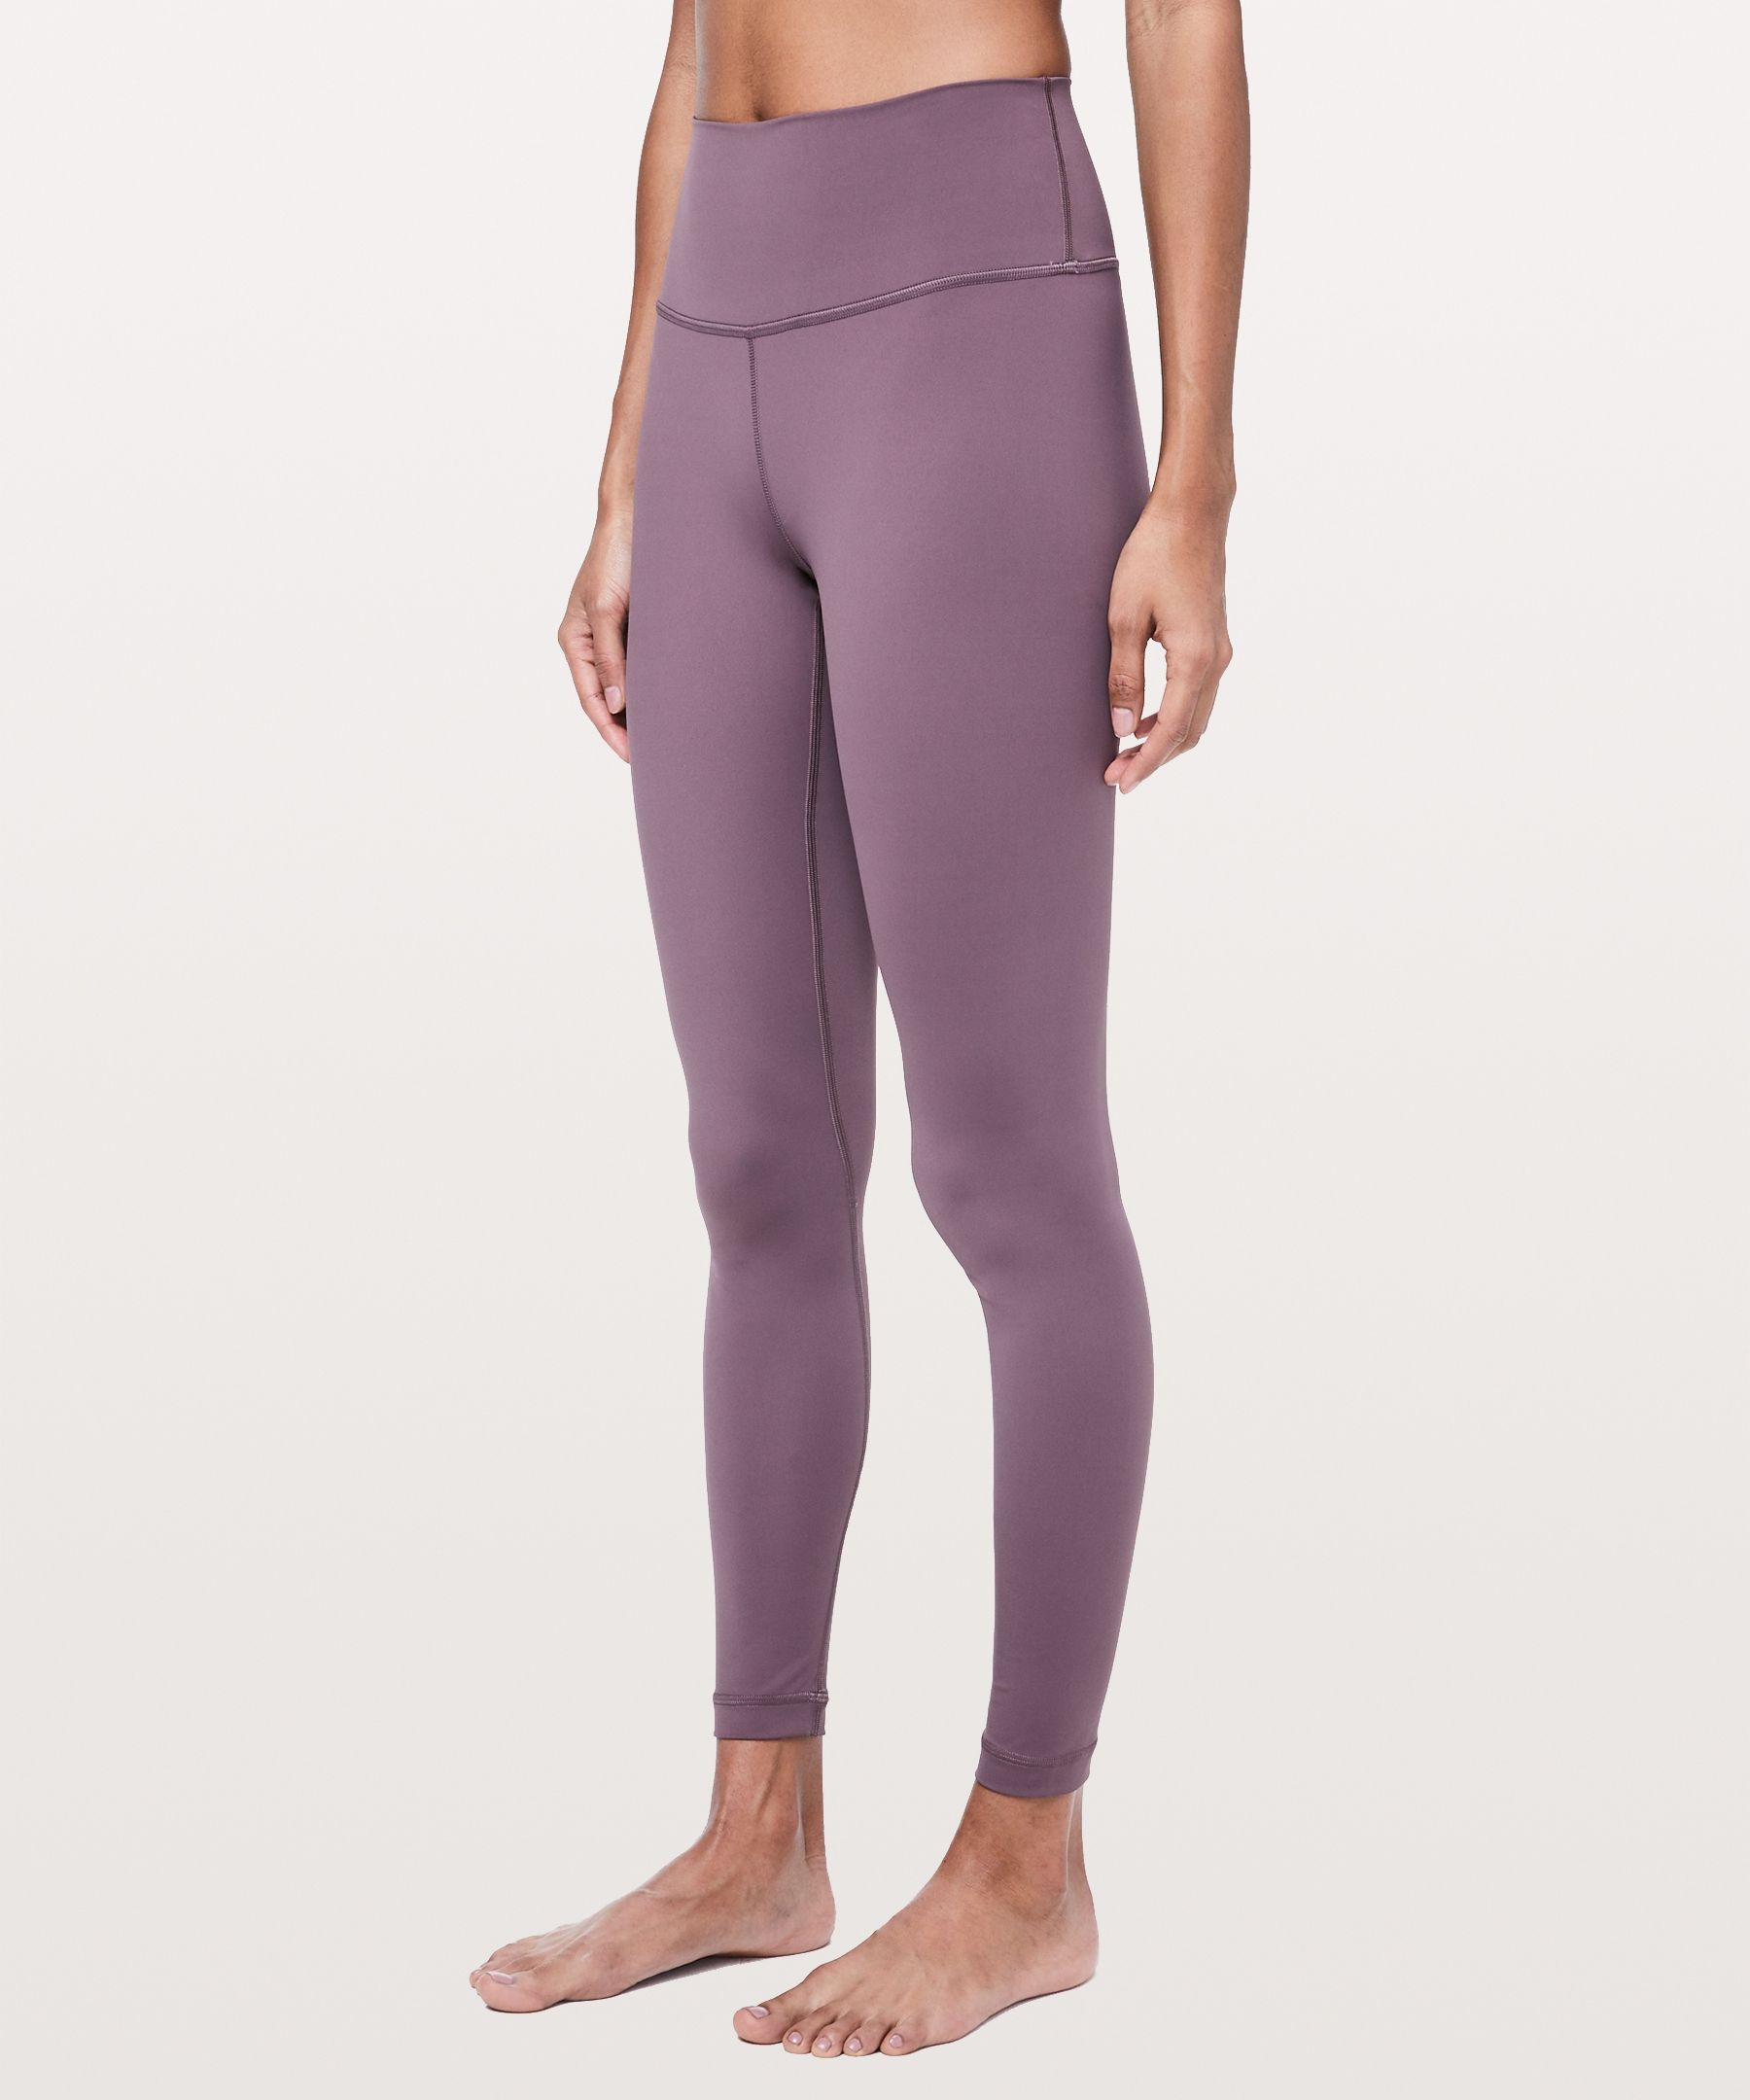 7958dce93e lululemon Women's Wunder Under High-Rise Legging 28